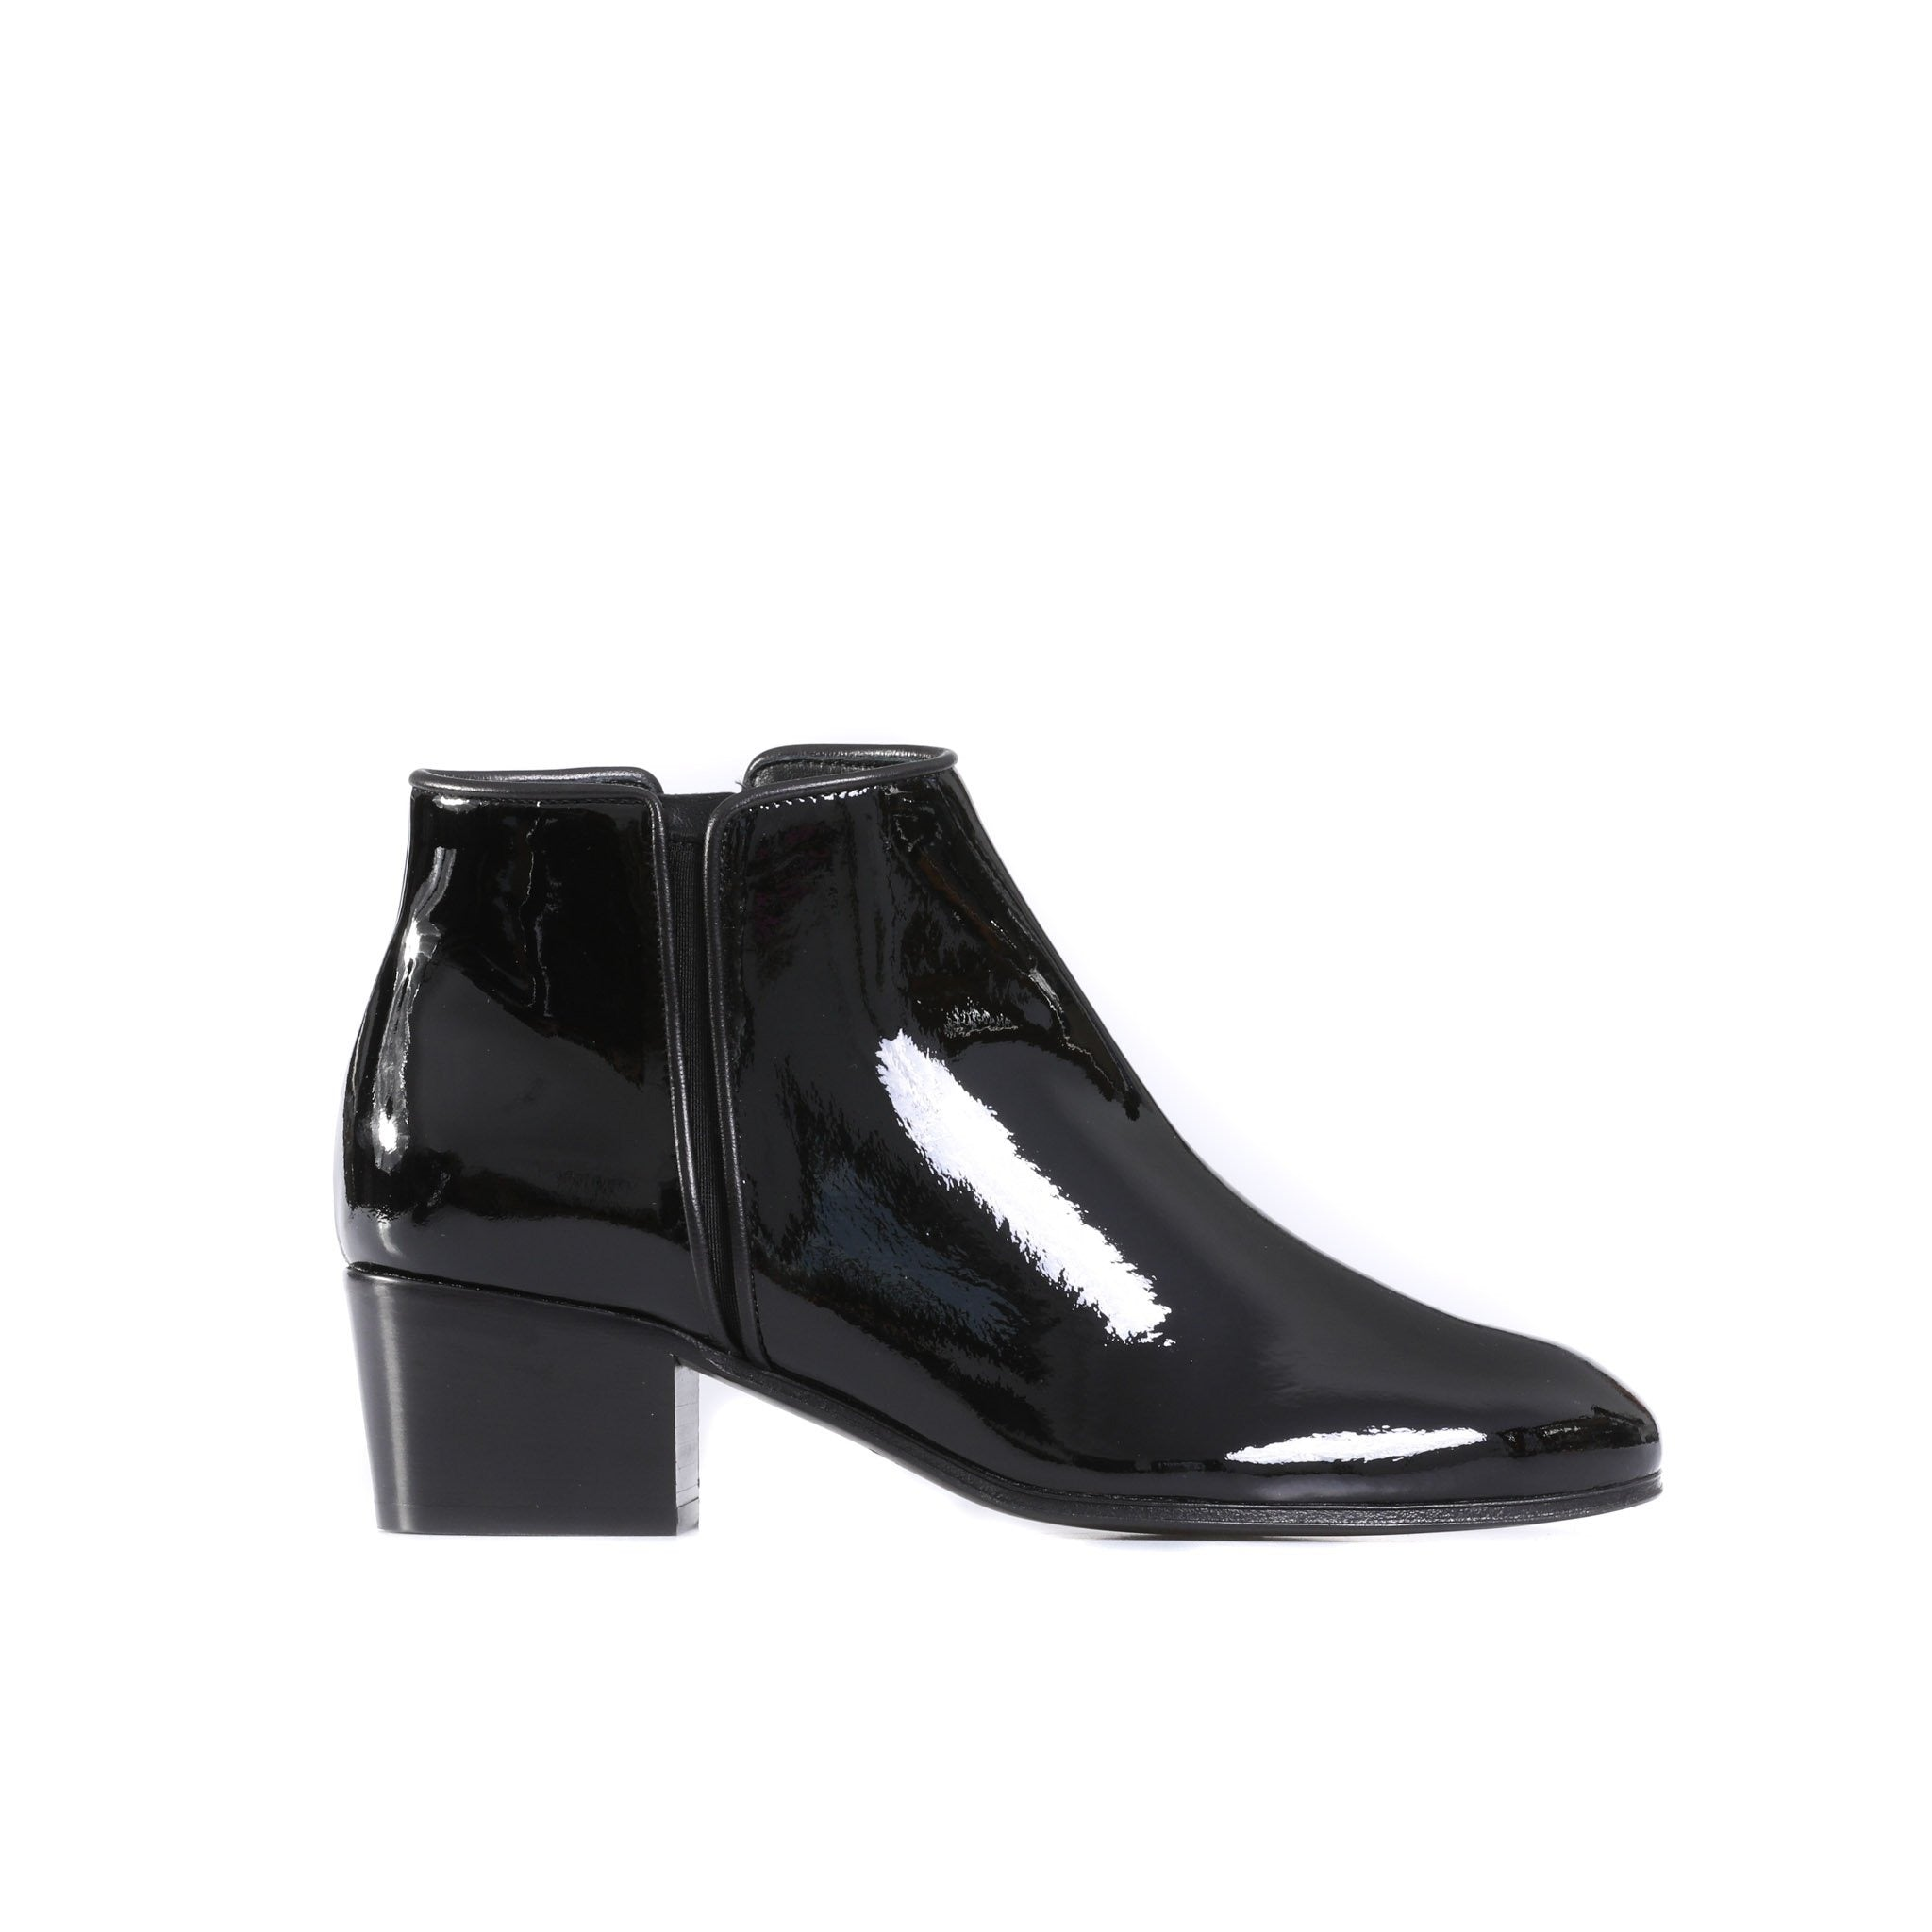 Giuseppe Zanotti Design Patent Leather Ankle Boots